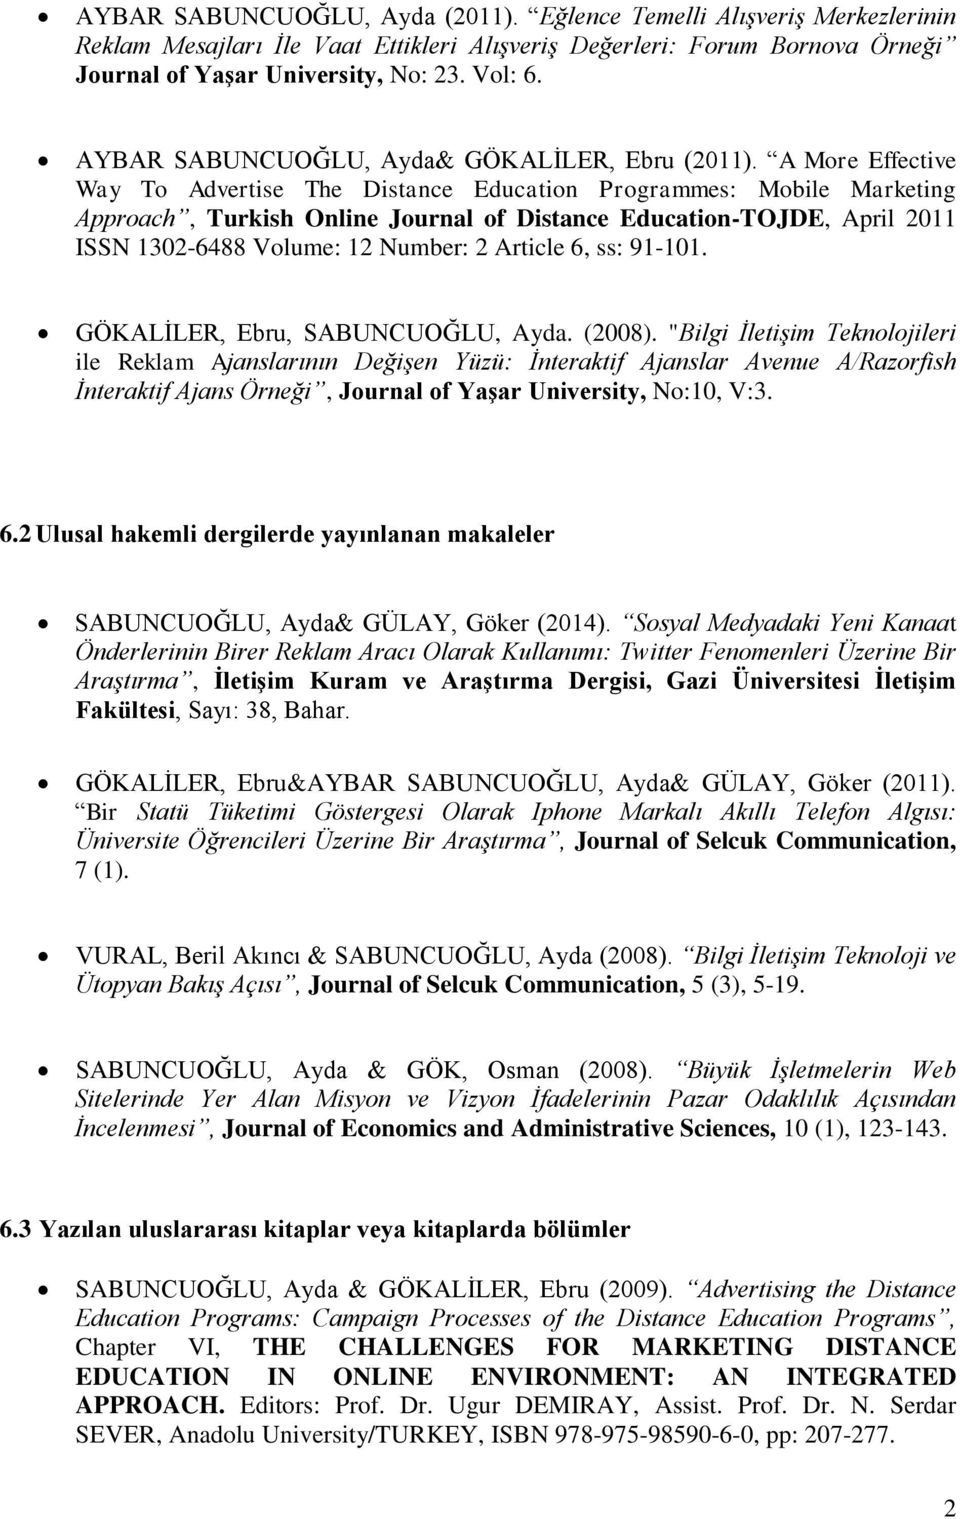 A More Effective Way To Advertise The Distance Education Programmes: Mobile Marketing Approach, Turkish Online Journal of Distance Education-TOJDE, April 2011 ISSN 1302-6488 Volume: 12 Number: 2